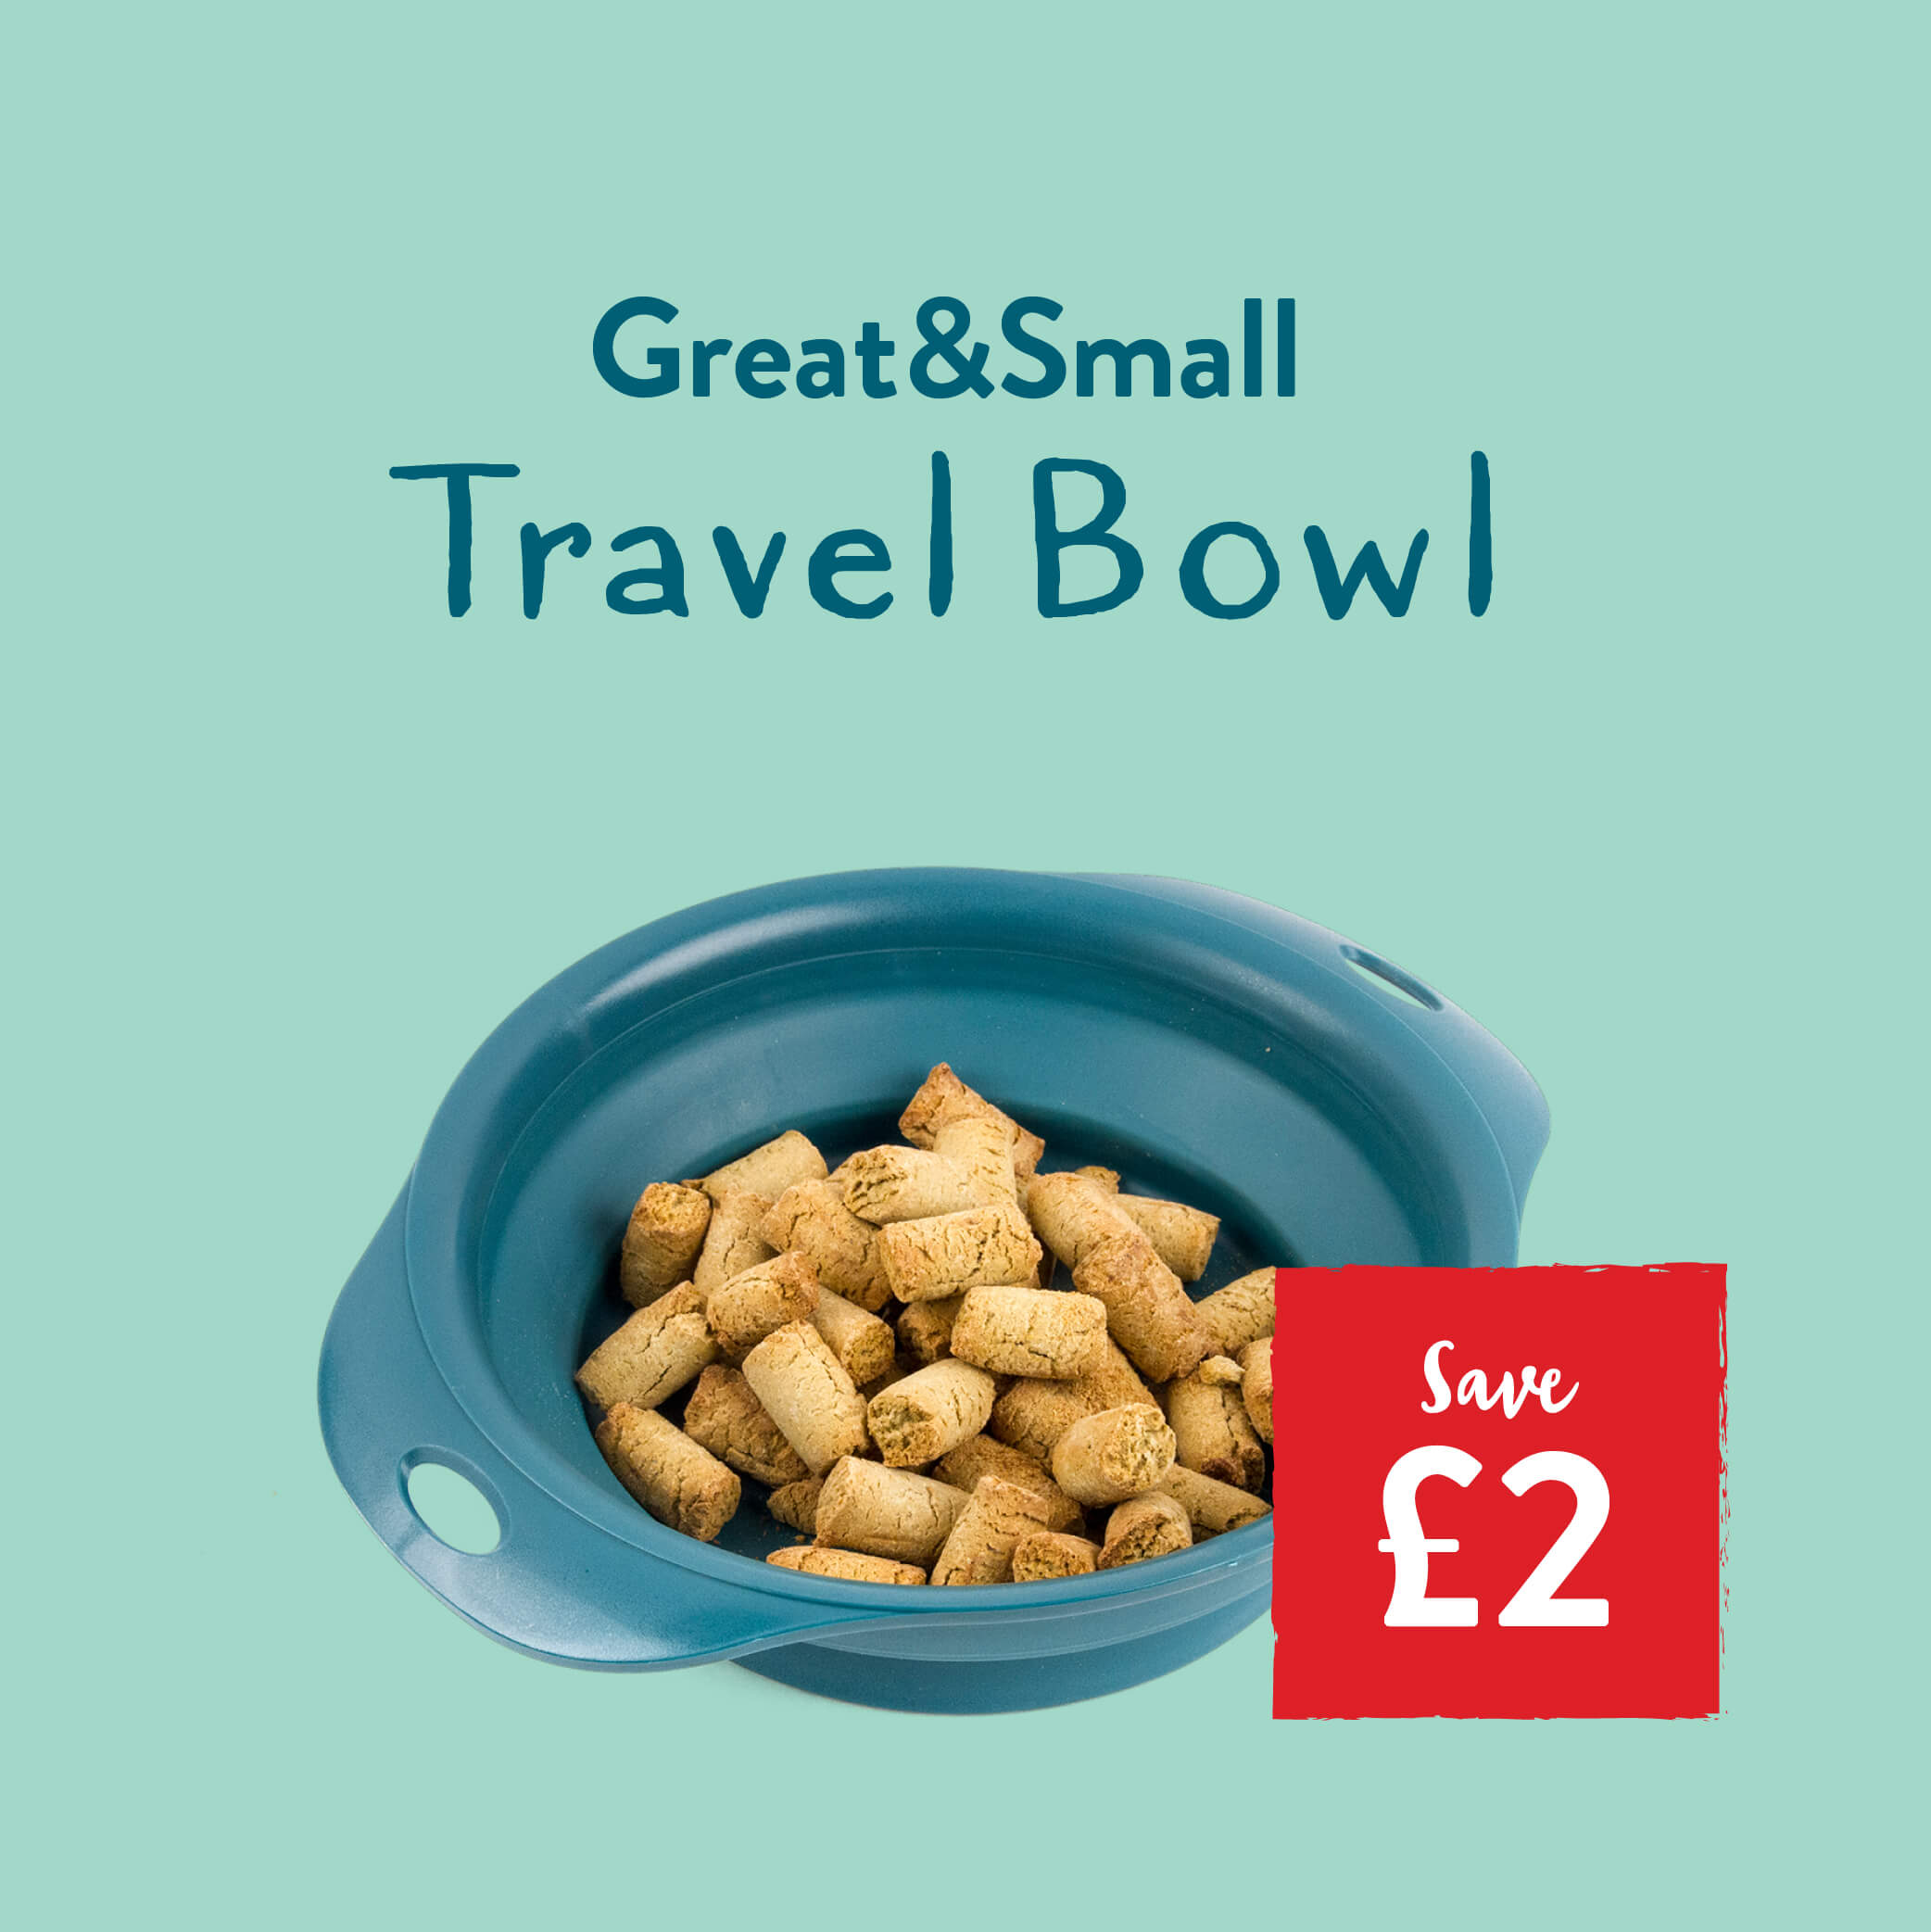 £2 off the Great&Small Travel Bowl